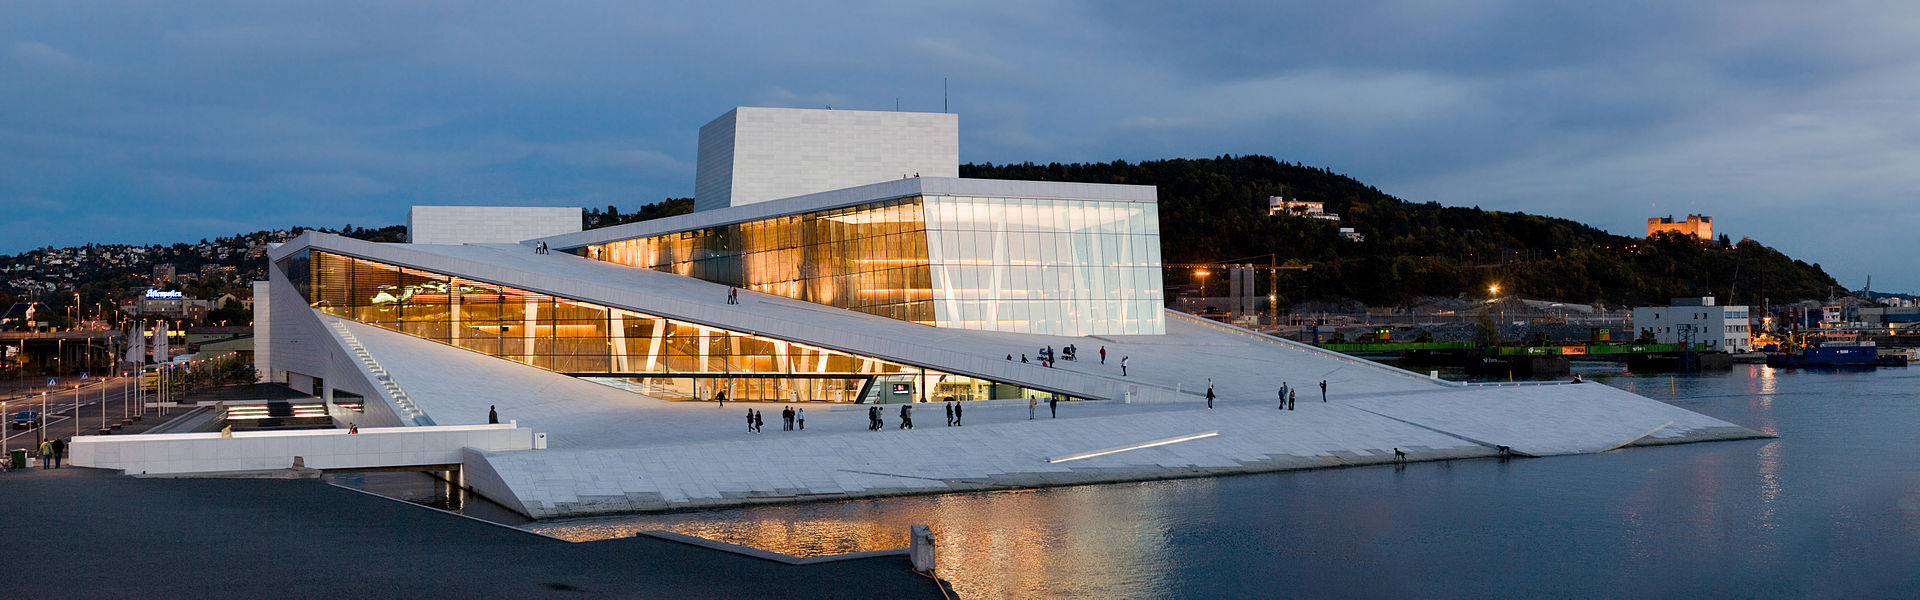 Panorama view of national opera theatre - Oslo Opera House